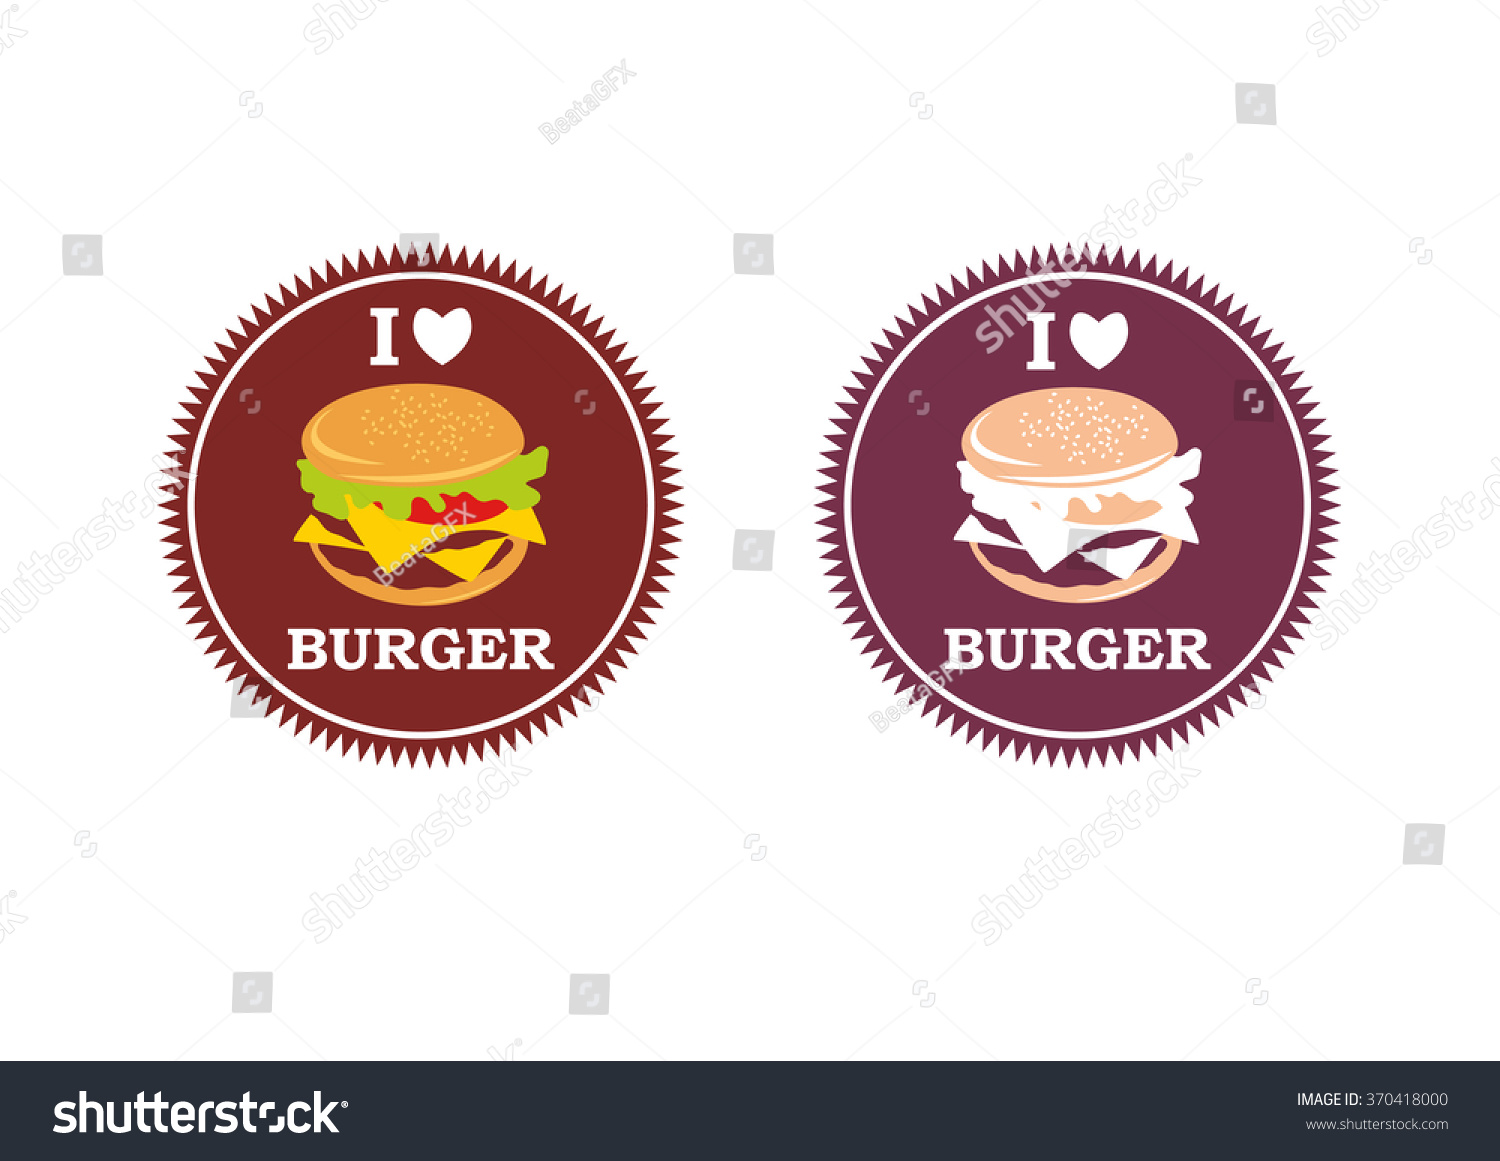 Juicy Logo Logo Restaurant Fast Food Stock Vector HD (Royalty Free ...